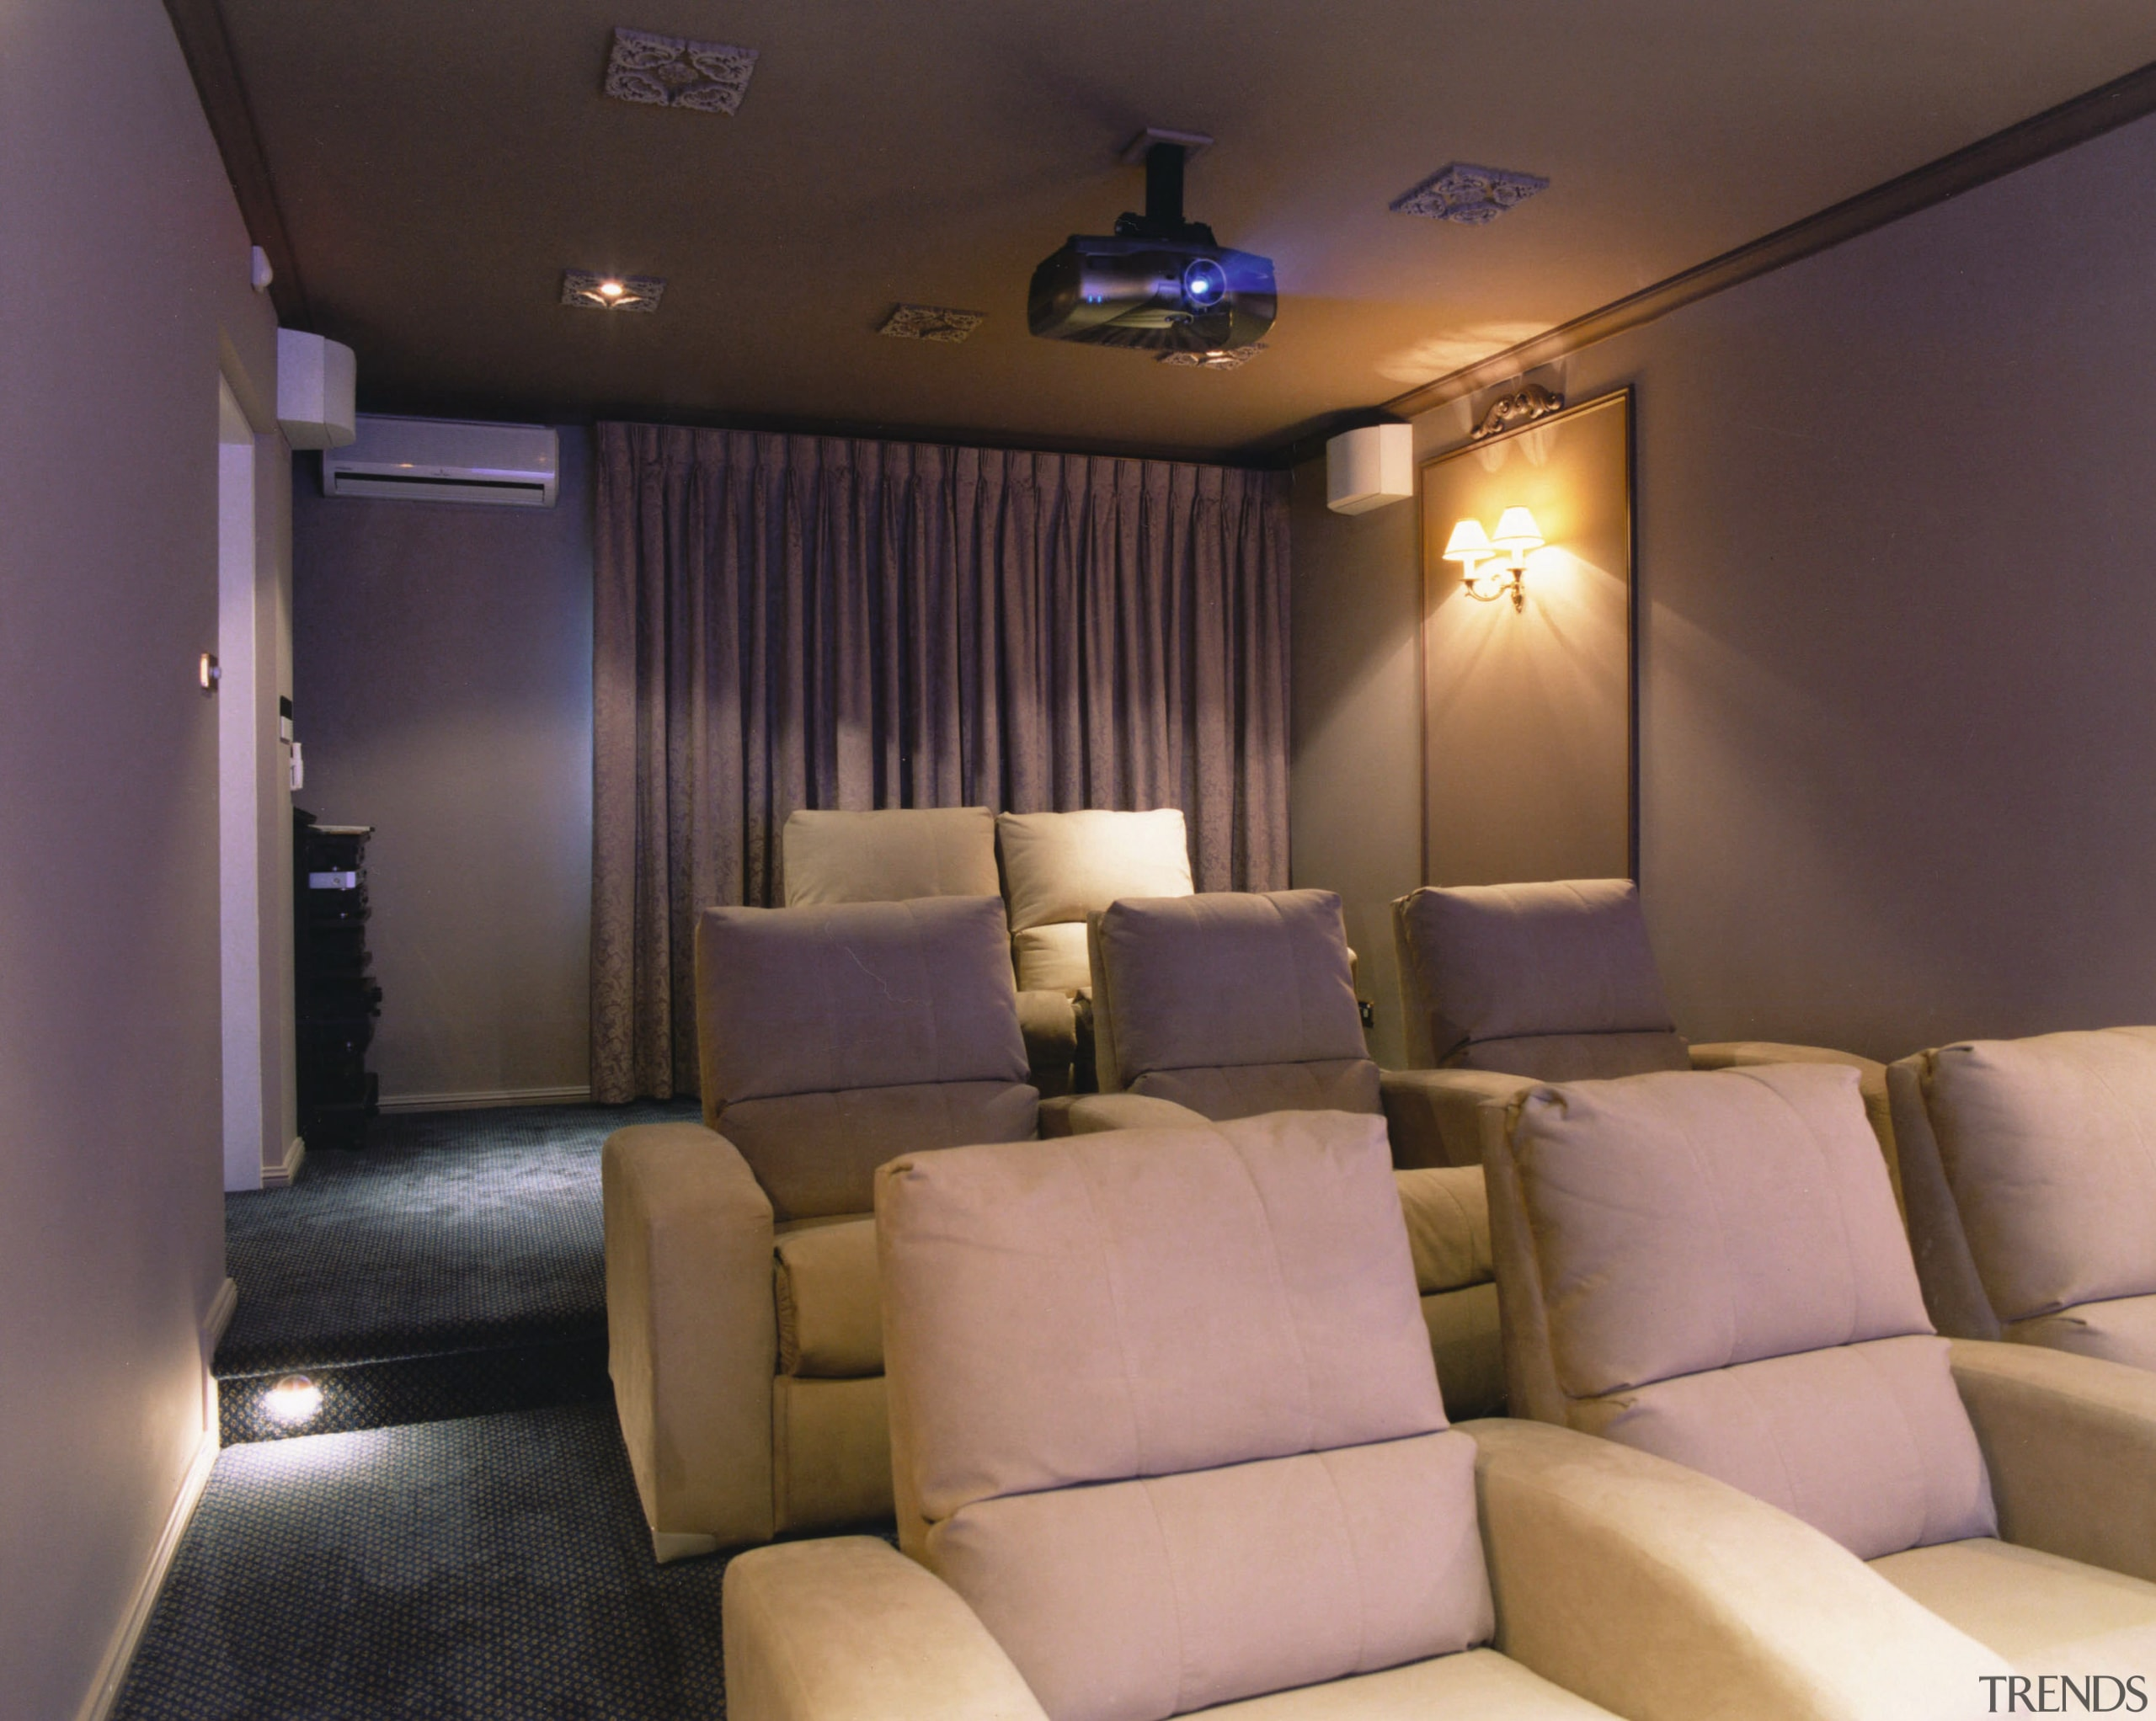 View of a home theatre, many cream seats, ceiling, interior design, room, black